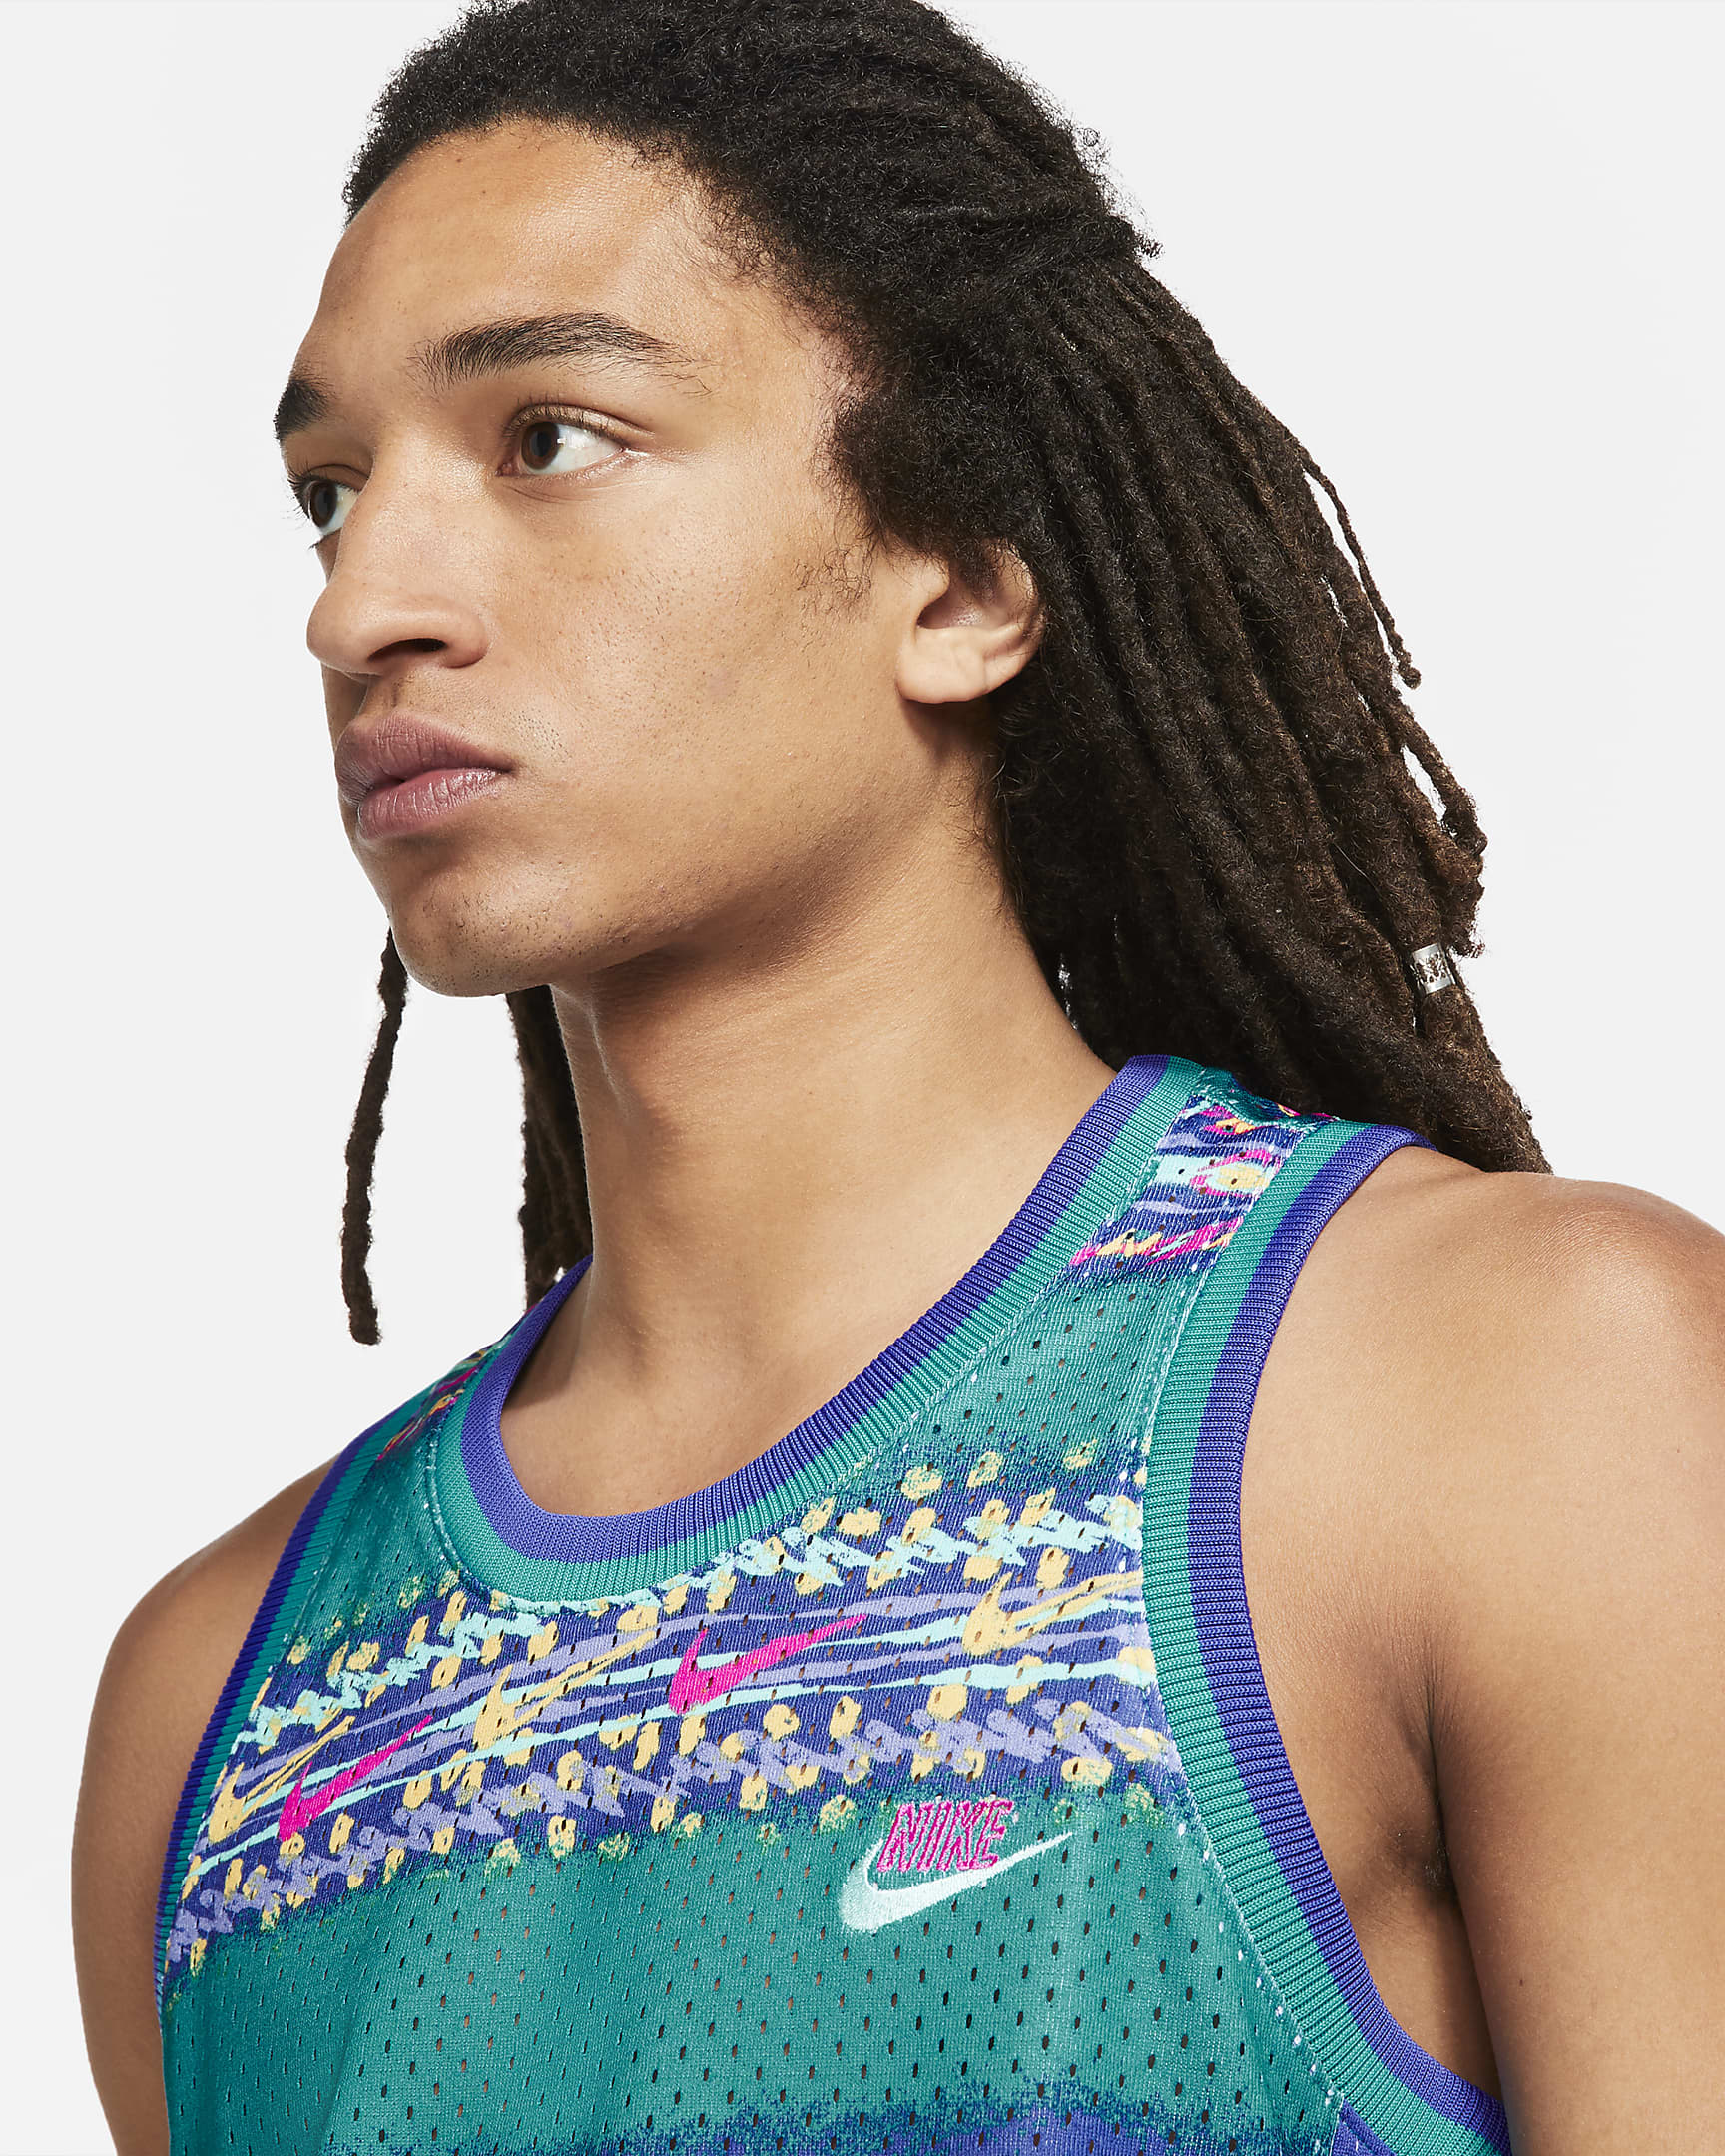 nike-stories-mens-basketball-jersey-G1Cm2c-2.png